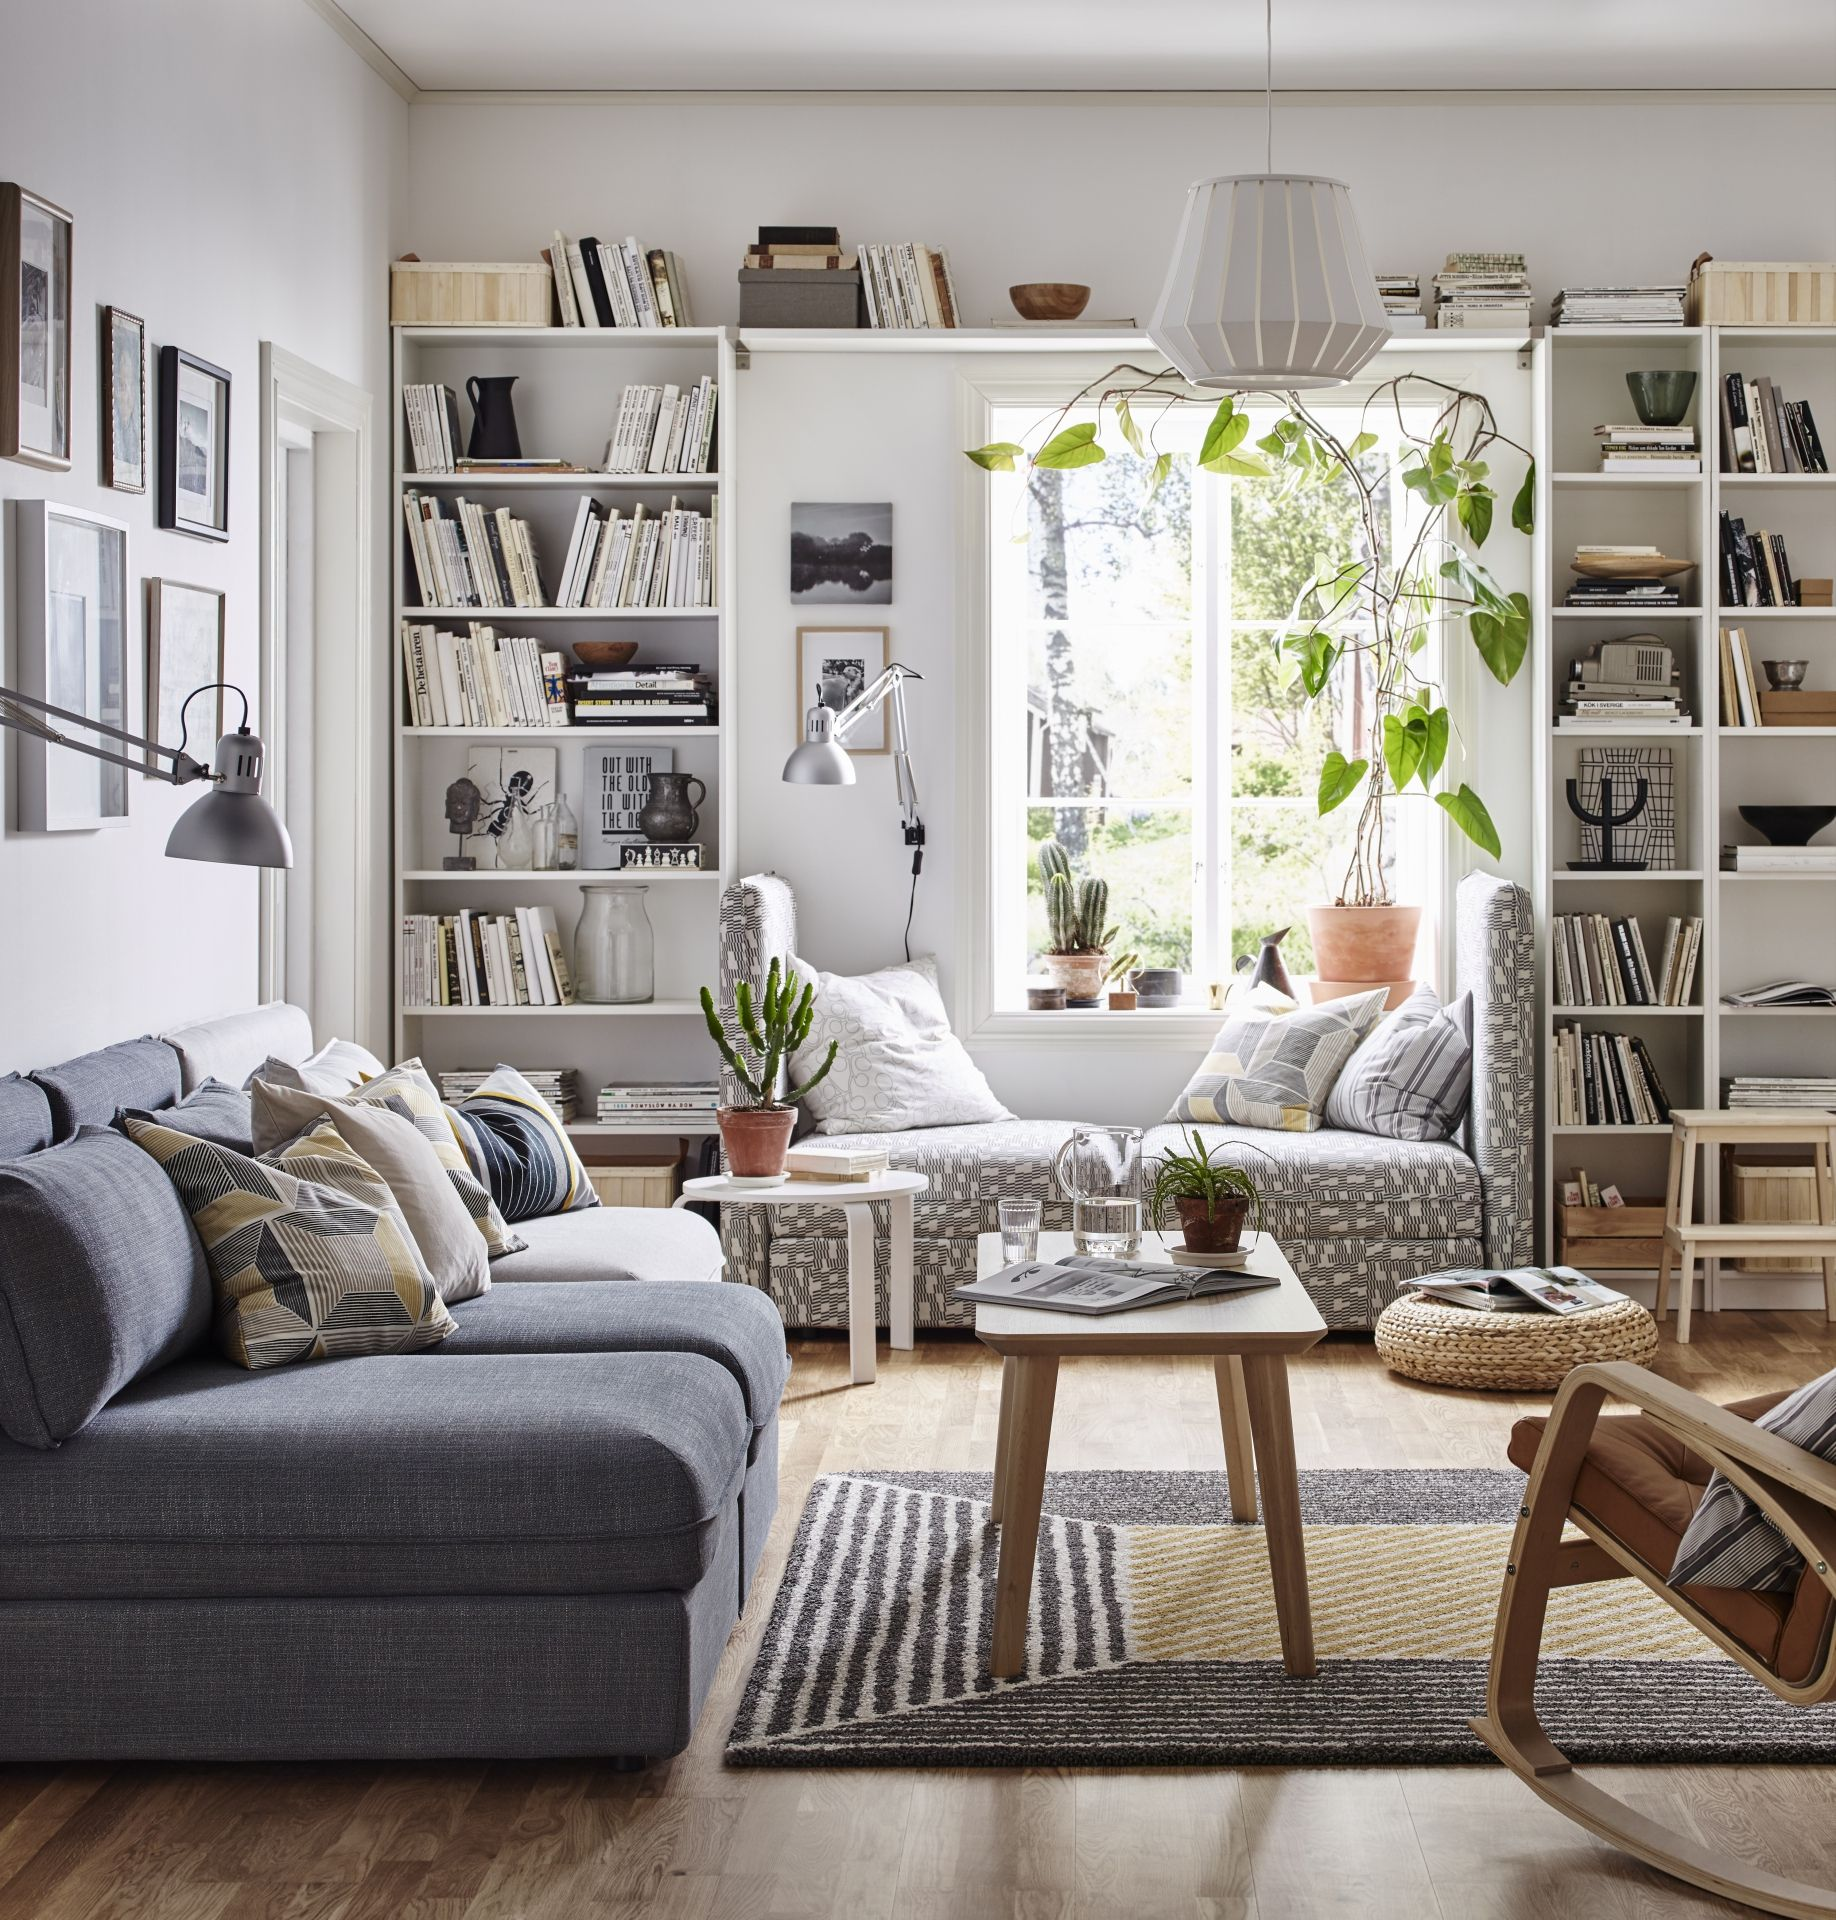 Billy boekenkast ikea ikeanederland inspiratie for Ikea living room design ideas